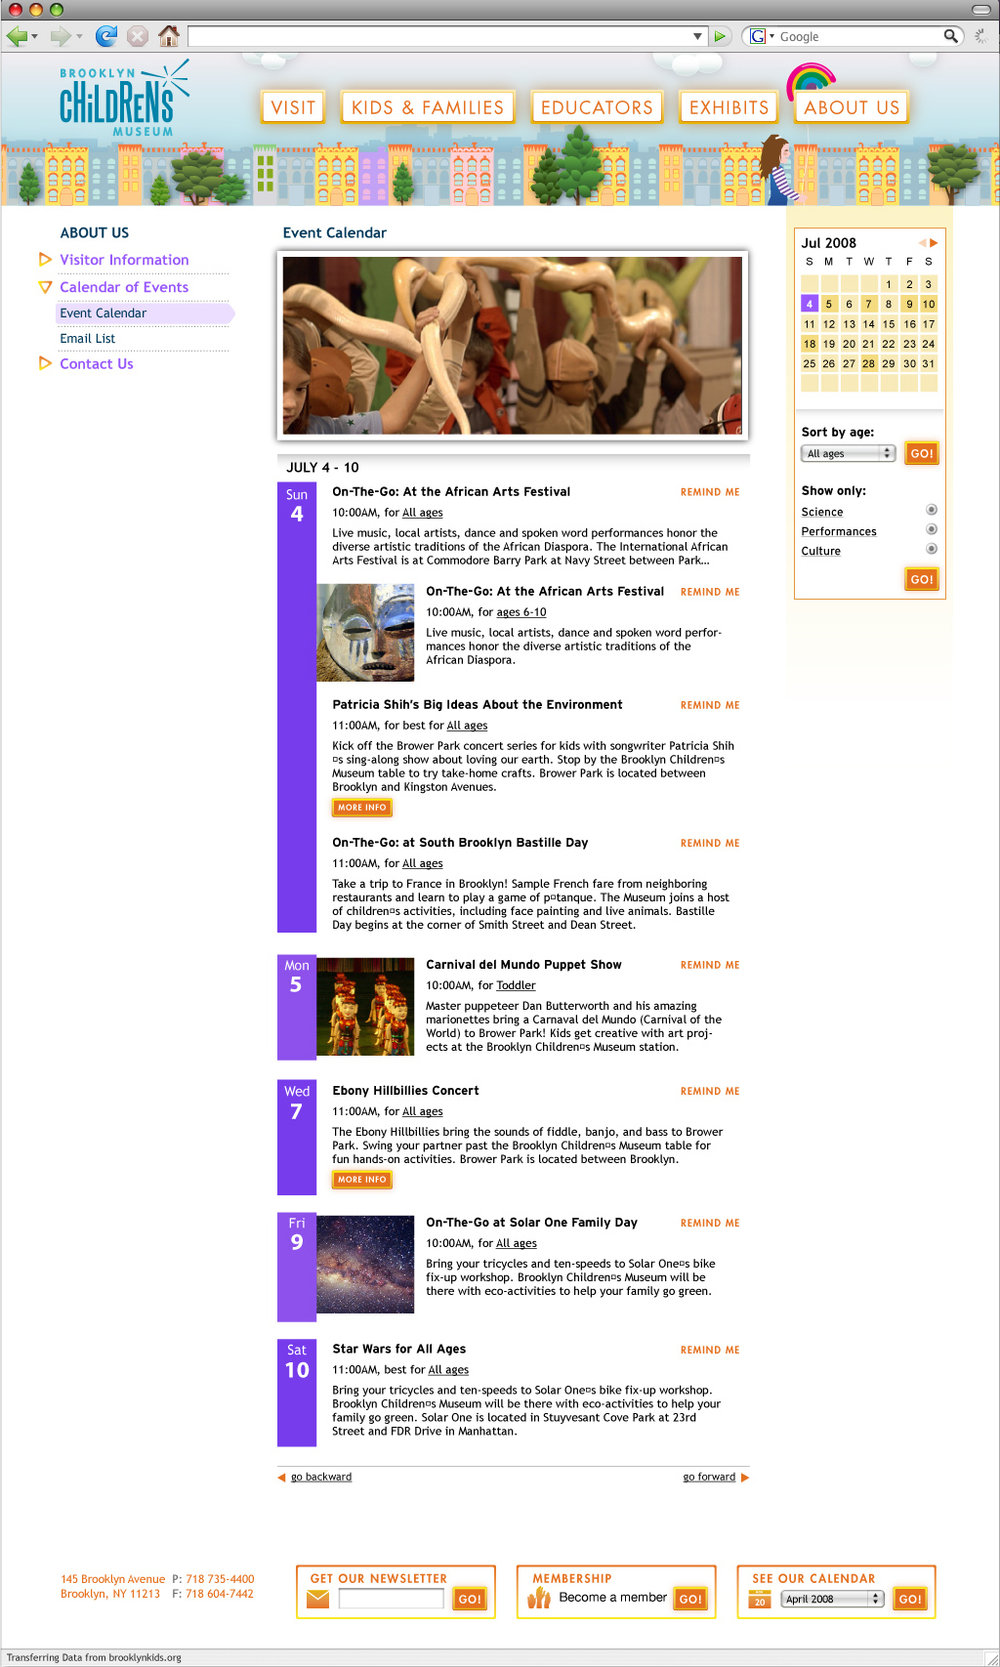 An example of a content page with the interior navigation.